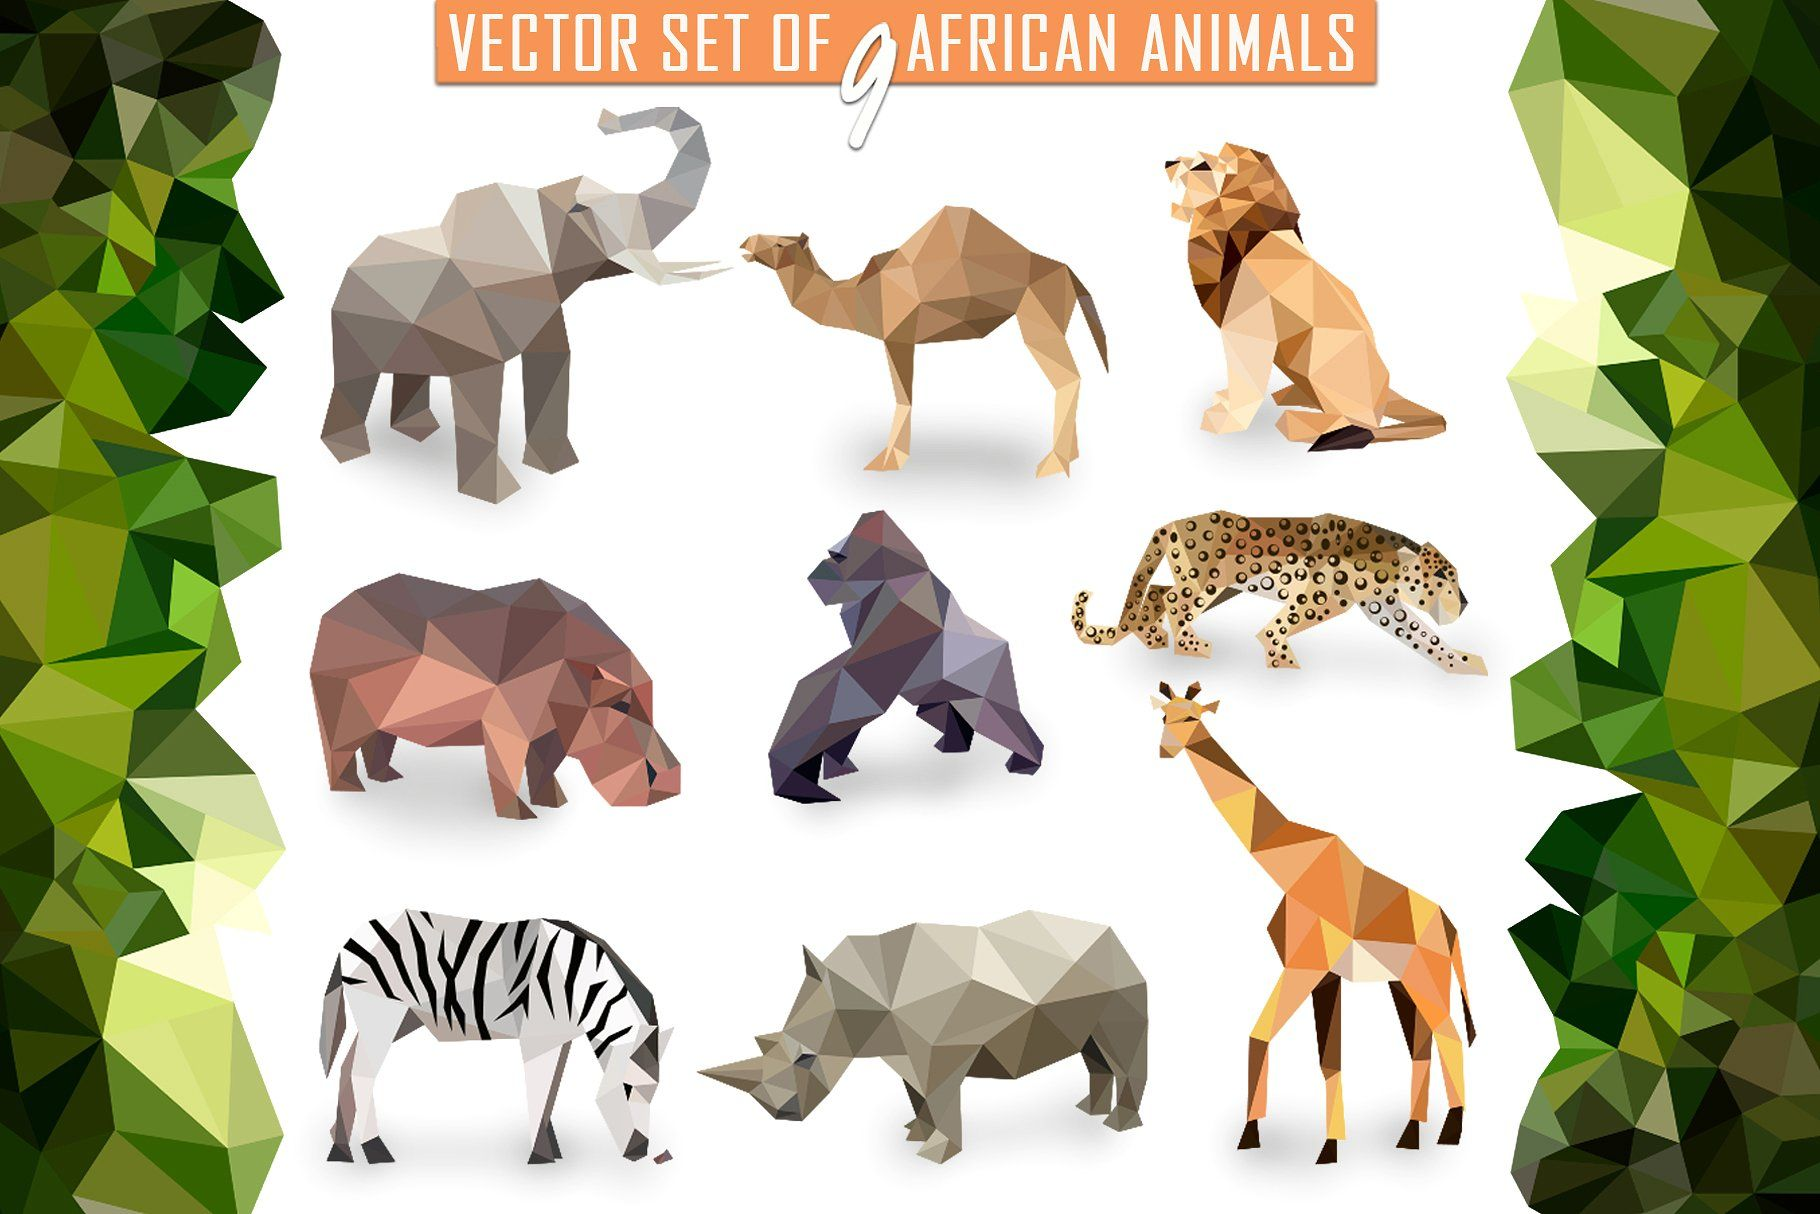 Vector Set Of African Animals Icons Animal Icon African Animals Jungle Illustration